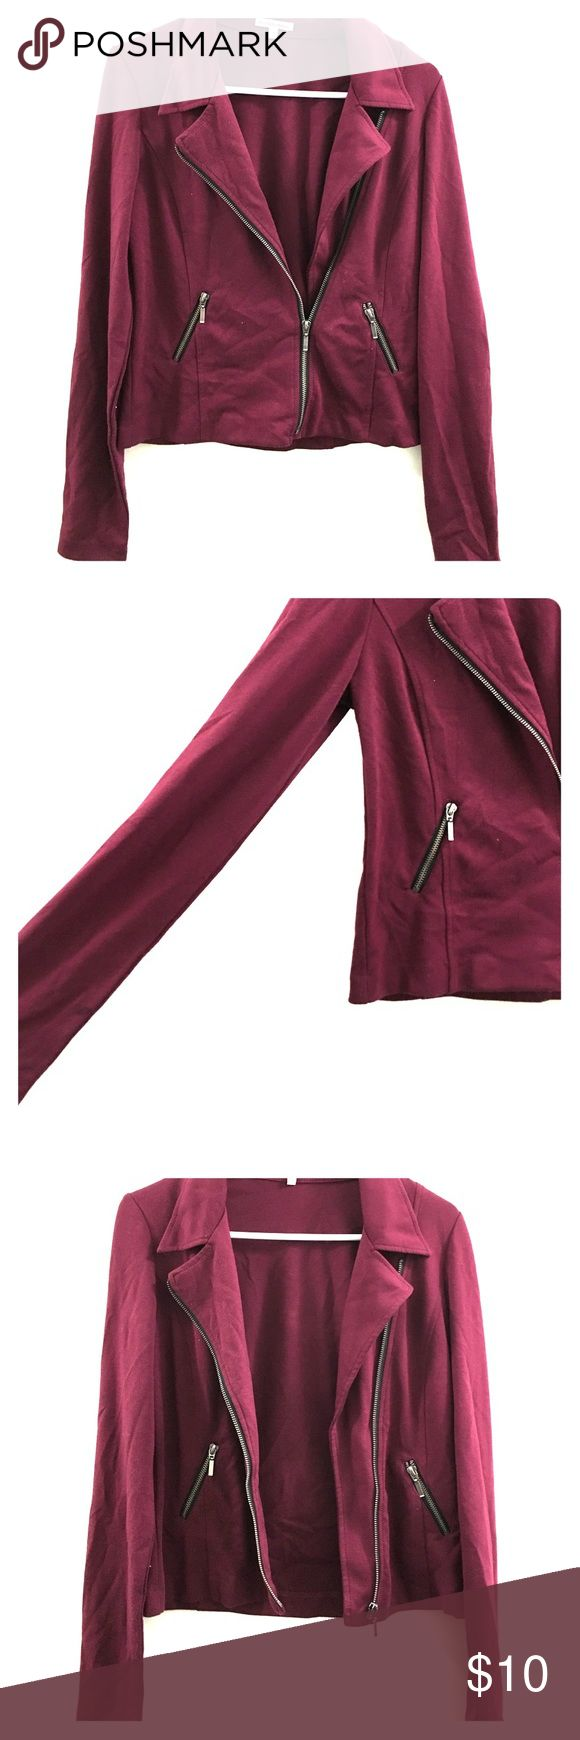 Charlotte Russe maroon blazer Maroon blazer with grey zippers Charlotte Russe Jackets & Coats Blazers